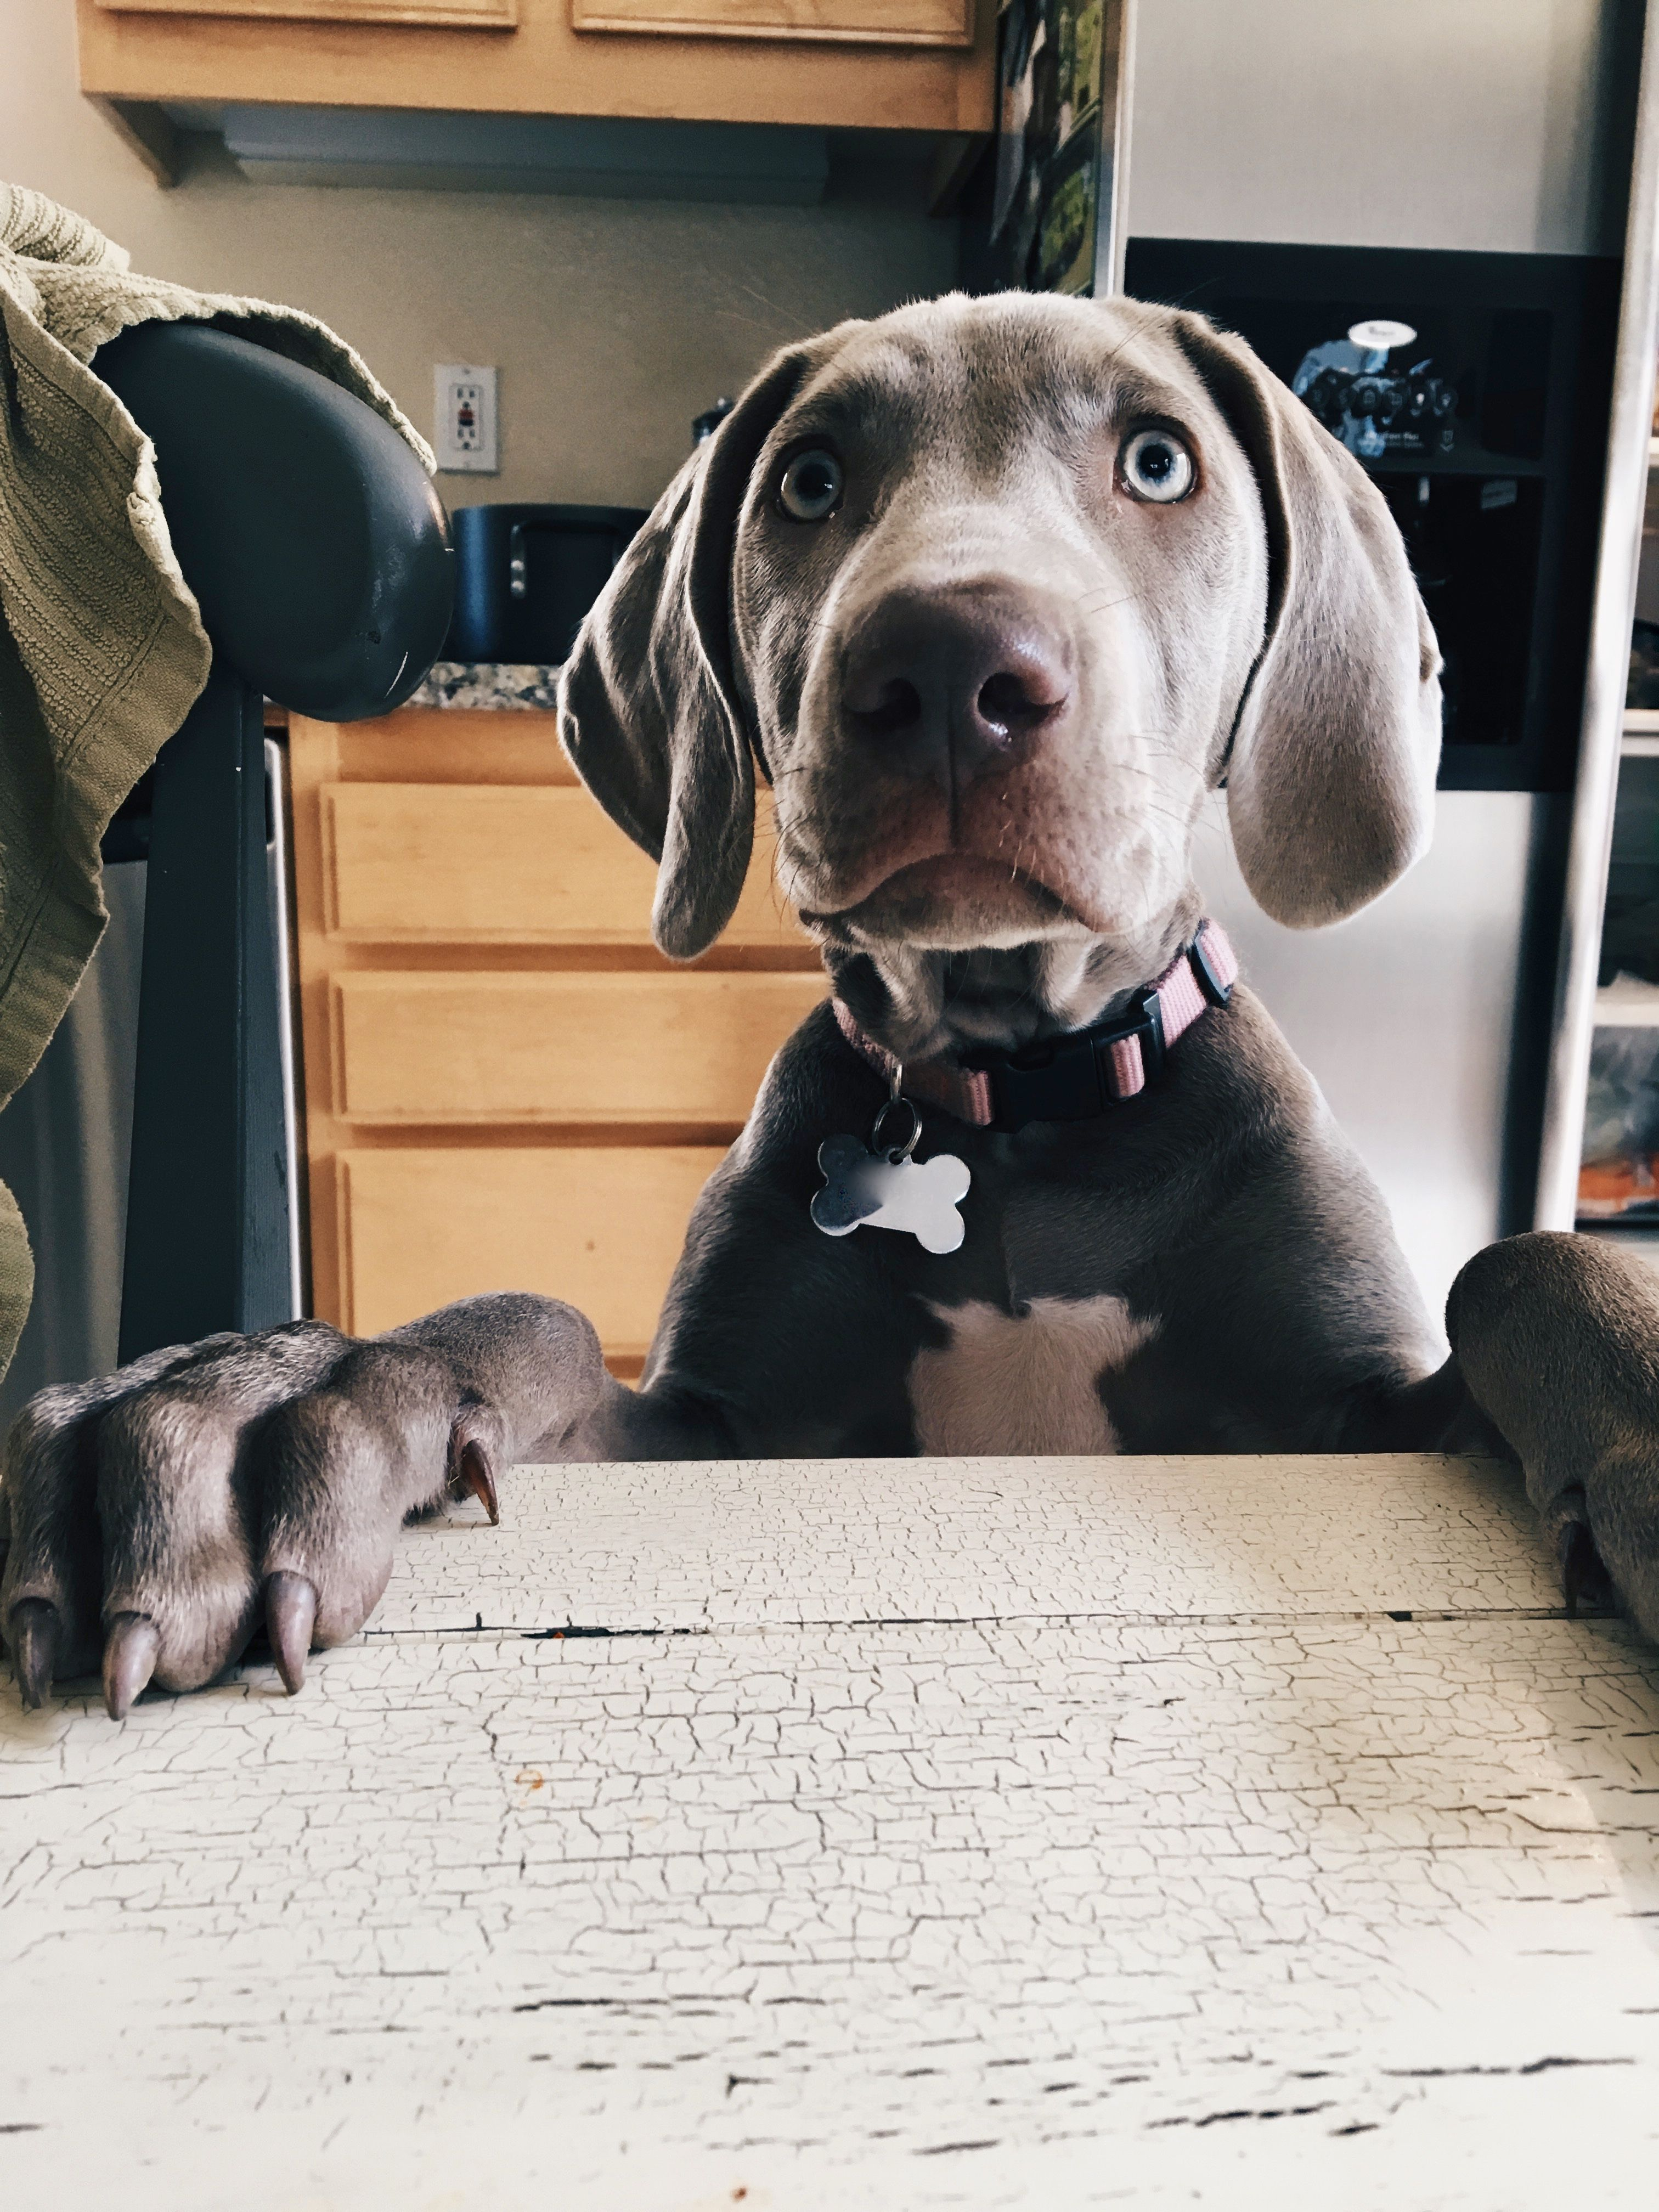 Weimaraner Puppy Begging Female Dog Grey Food Cute Adorable With